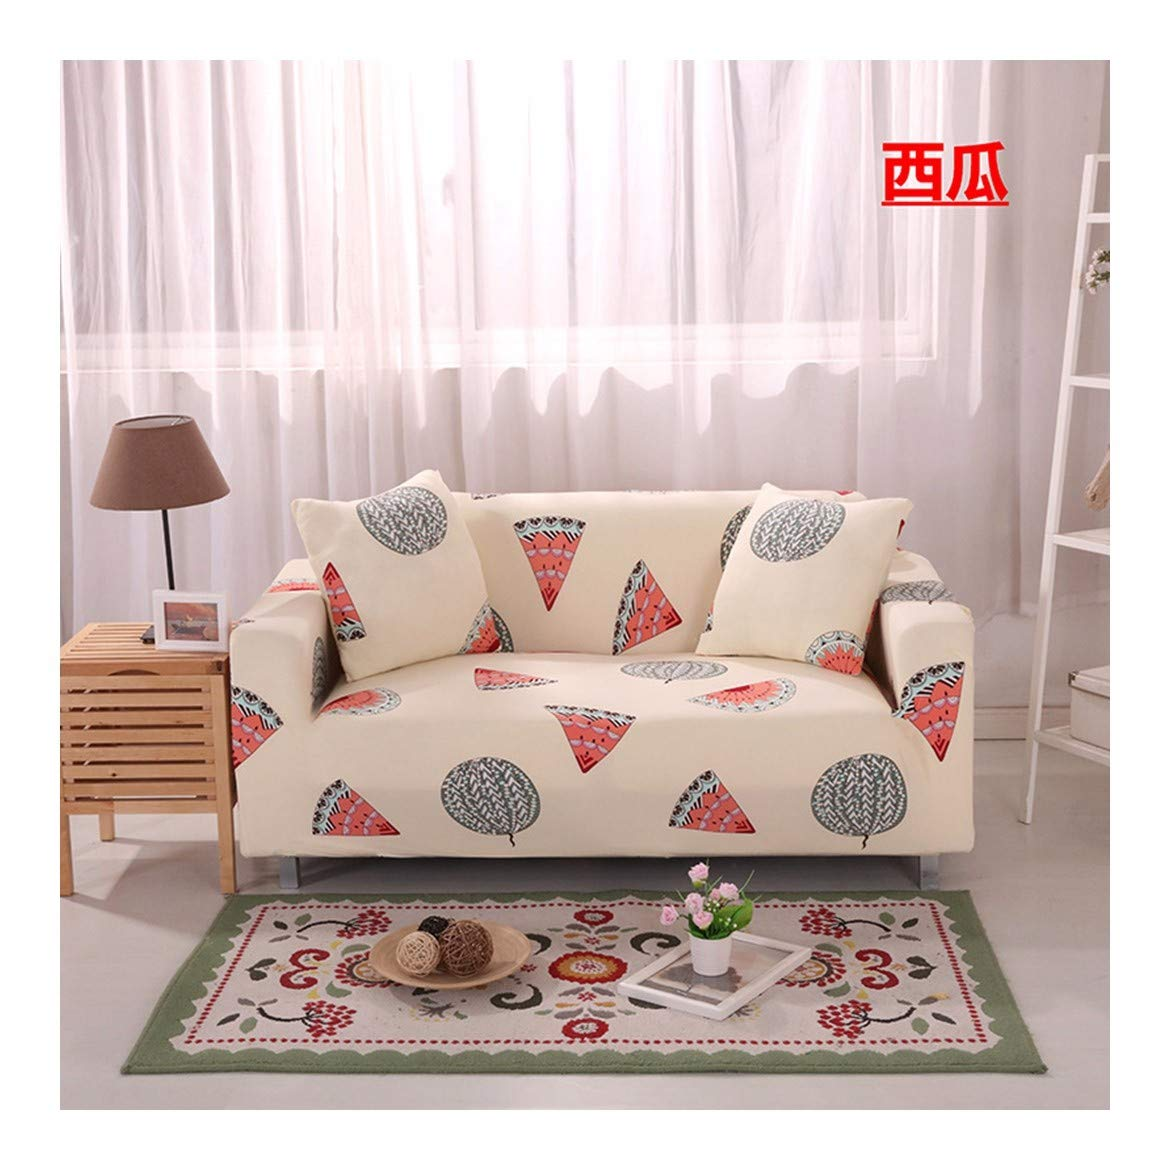 3seat VGUYFUYH Watermelon Pattern Four Seasons Universal Sofa Cover Polyester Full Package Elasticity Home Universal Sofa Cover Simple Fashion One Piece Durable Dust-Proof Pet Dog Predective Cover,3Sea